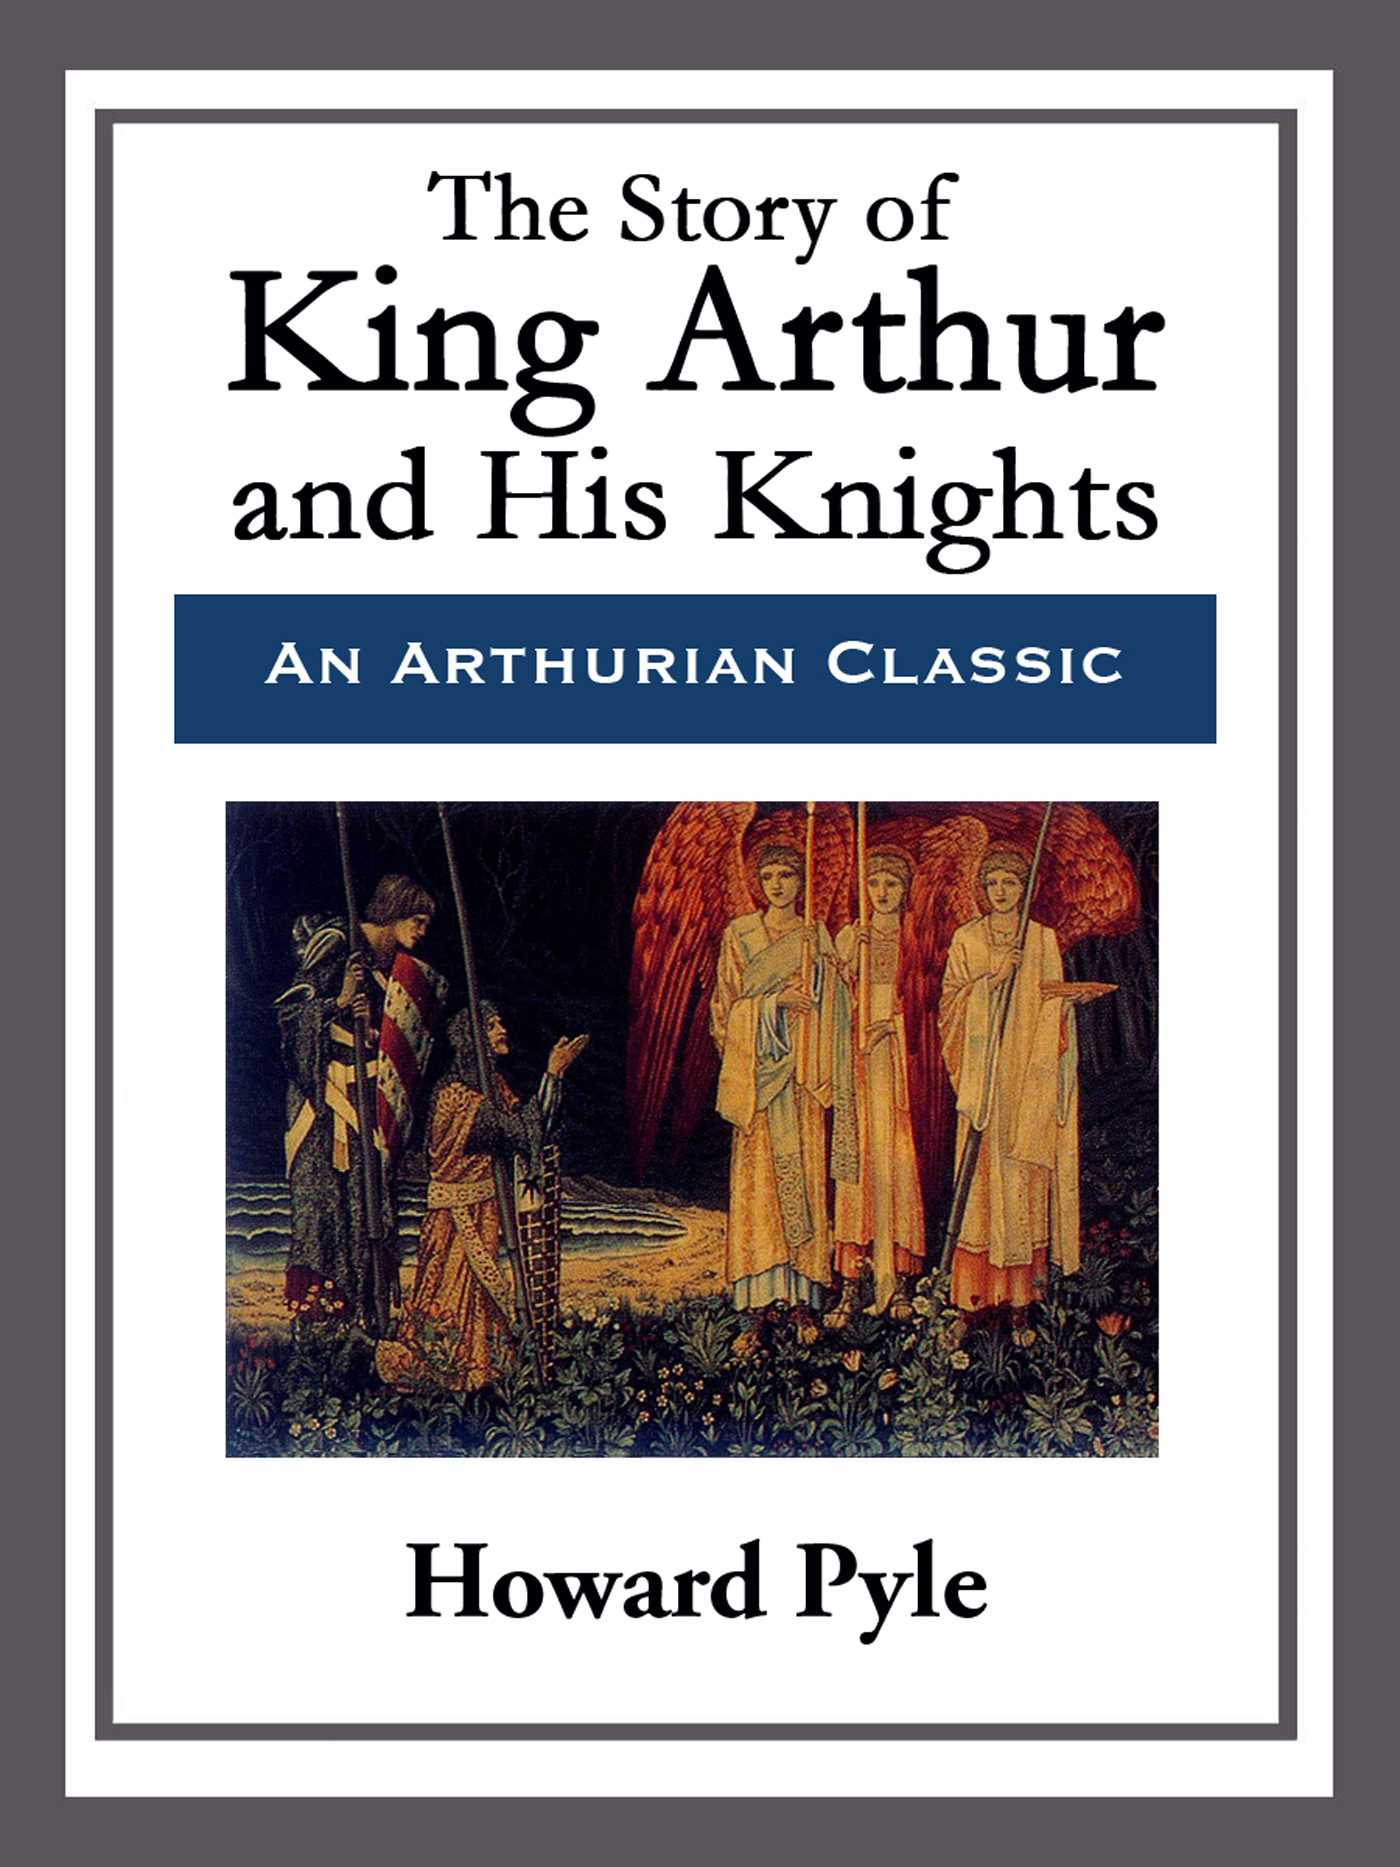 The story of king arthur and his knights 9781681465227 hr